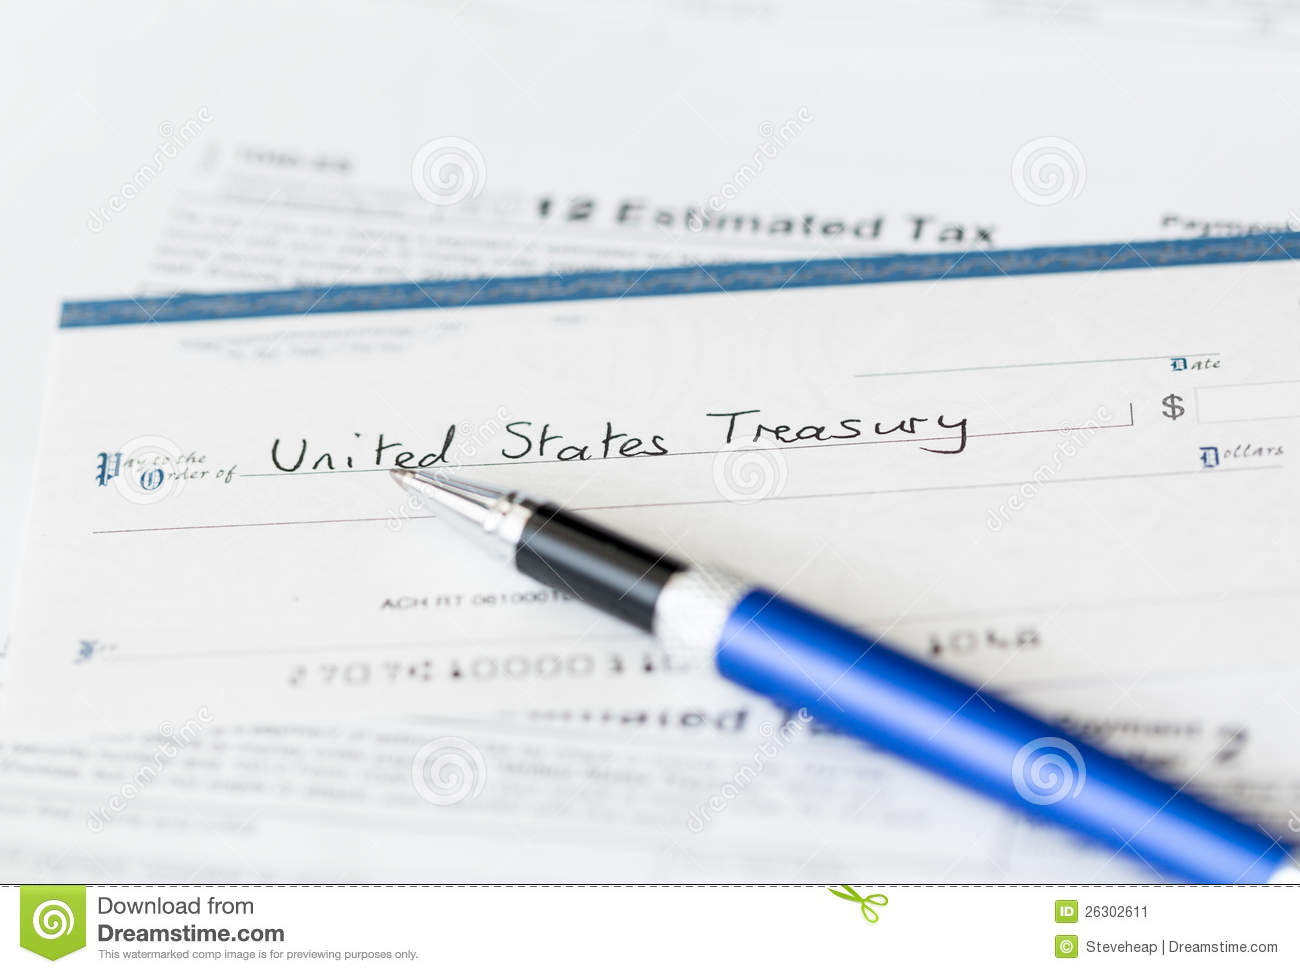 Usa tax form 1040 for year 2012 with check stock image image of usa tax form 1040 for year 2012 with check filing cheque falaconquin